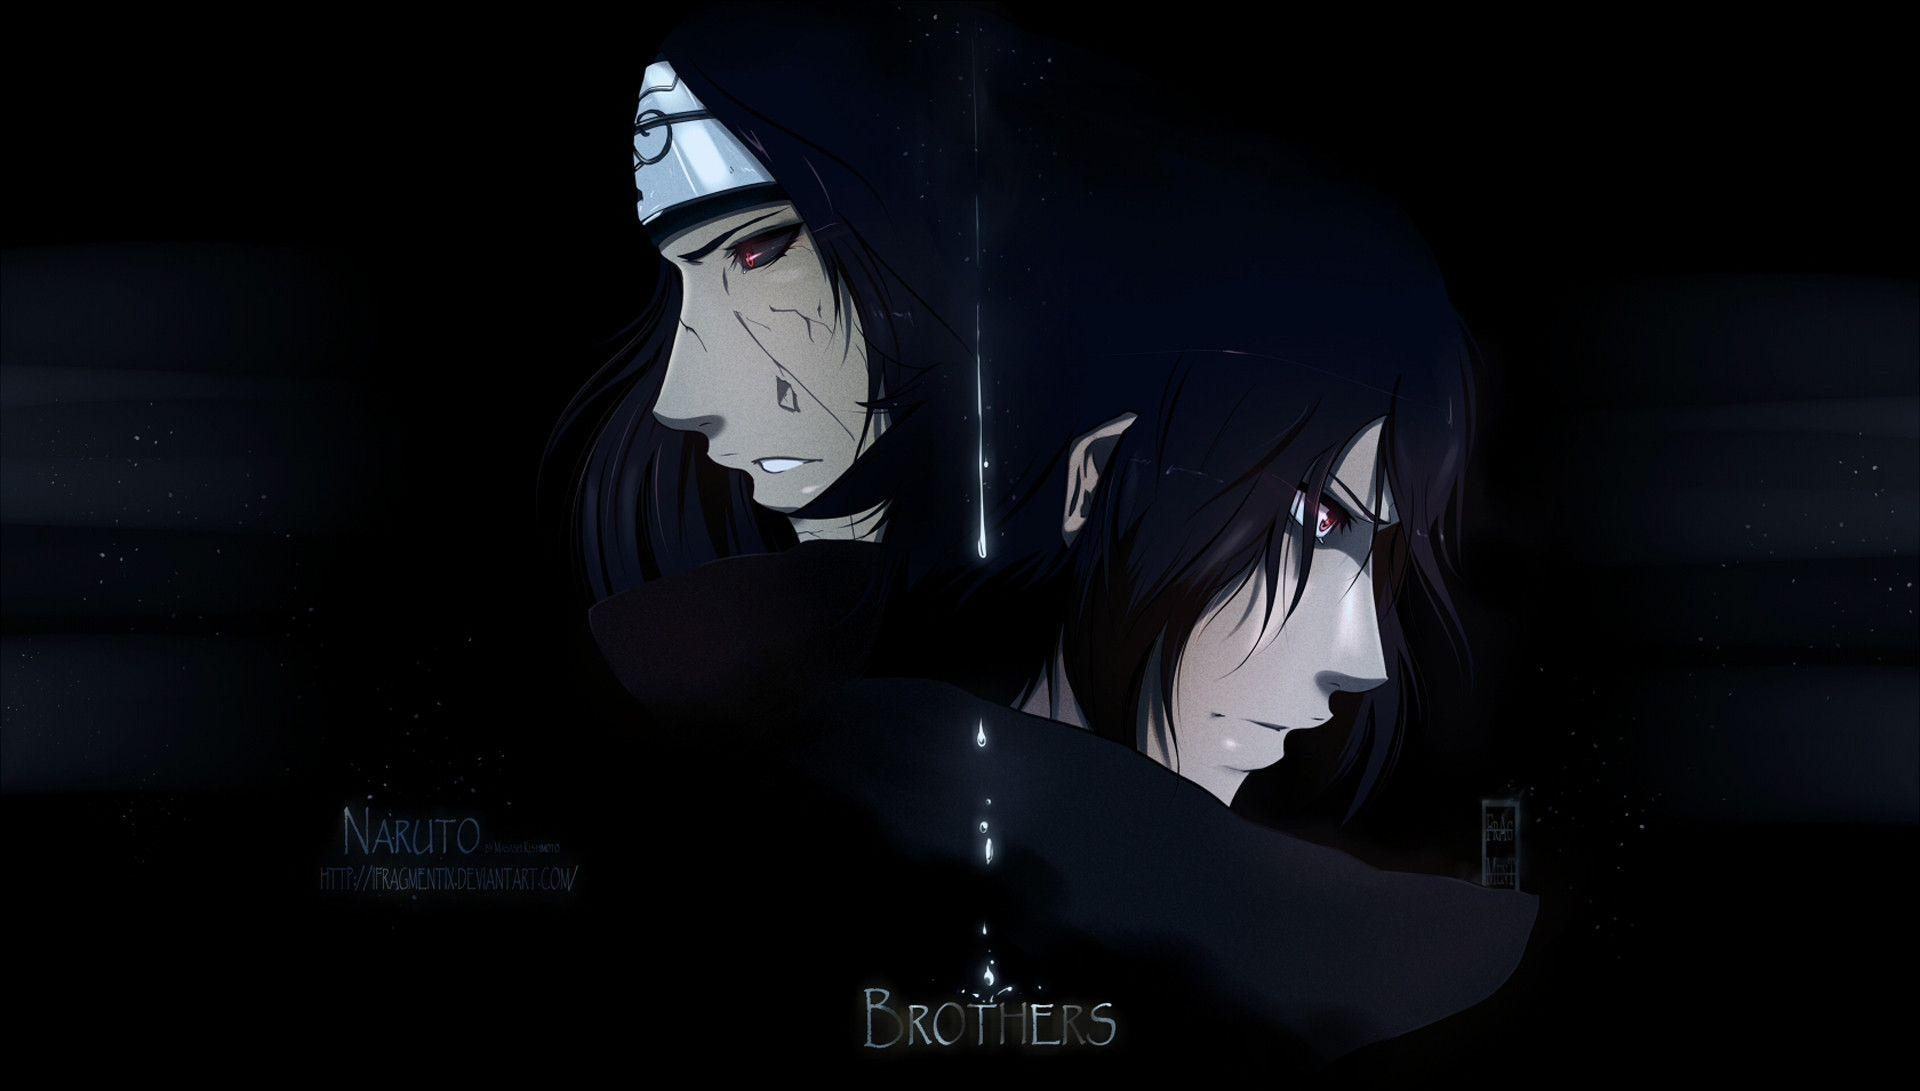 itachi sasuke wallpapers - wallpaper cave